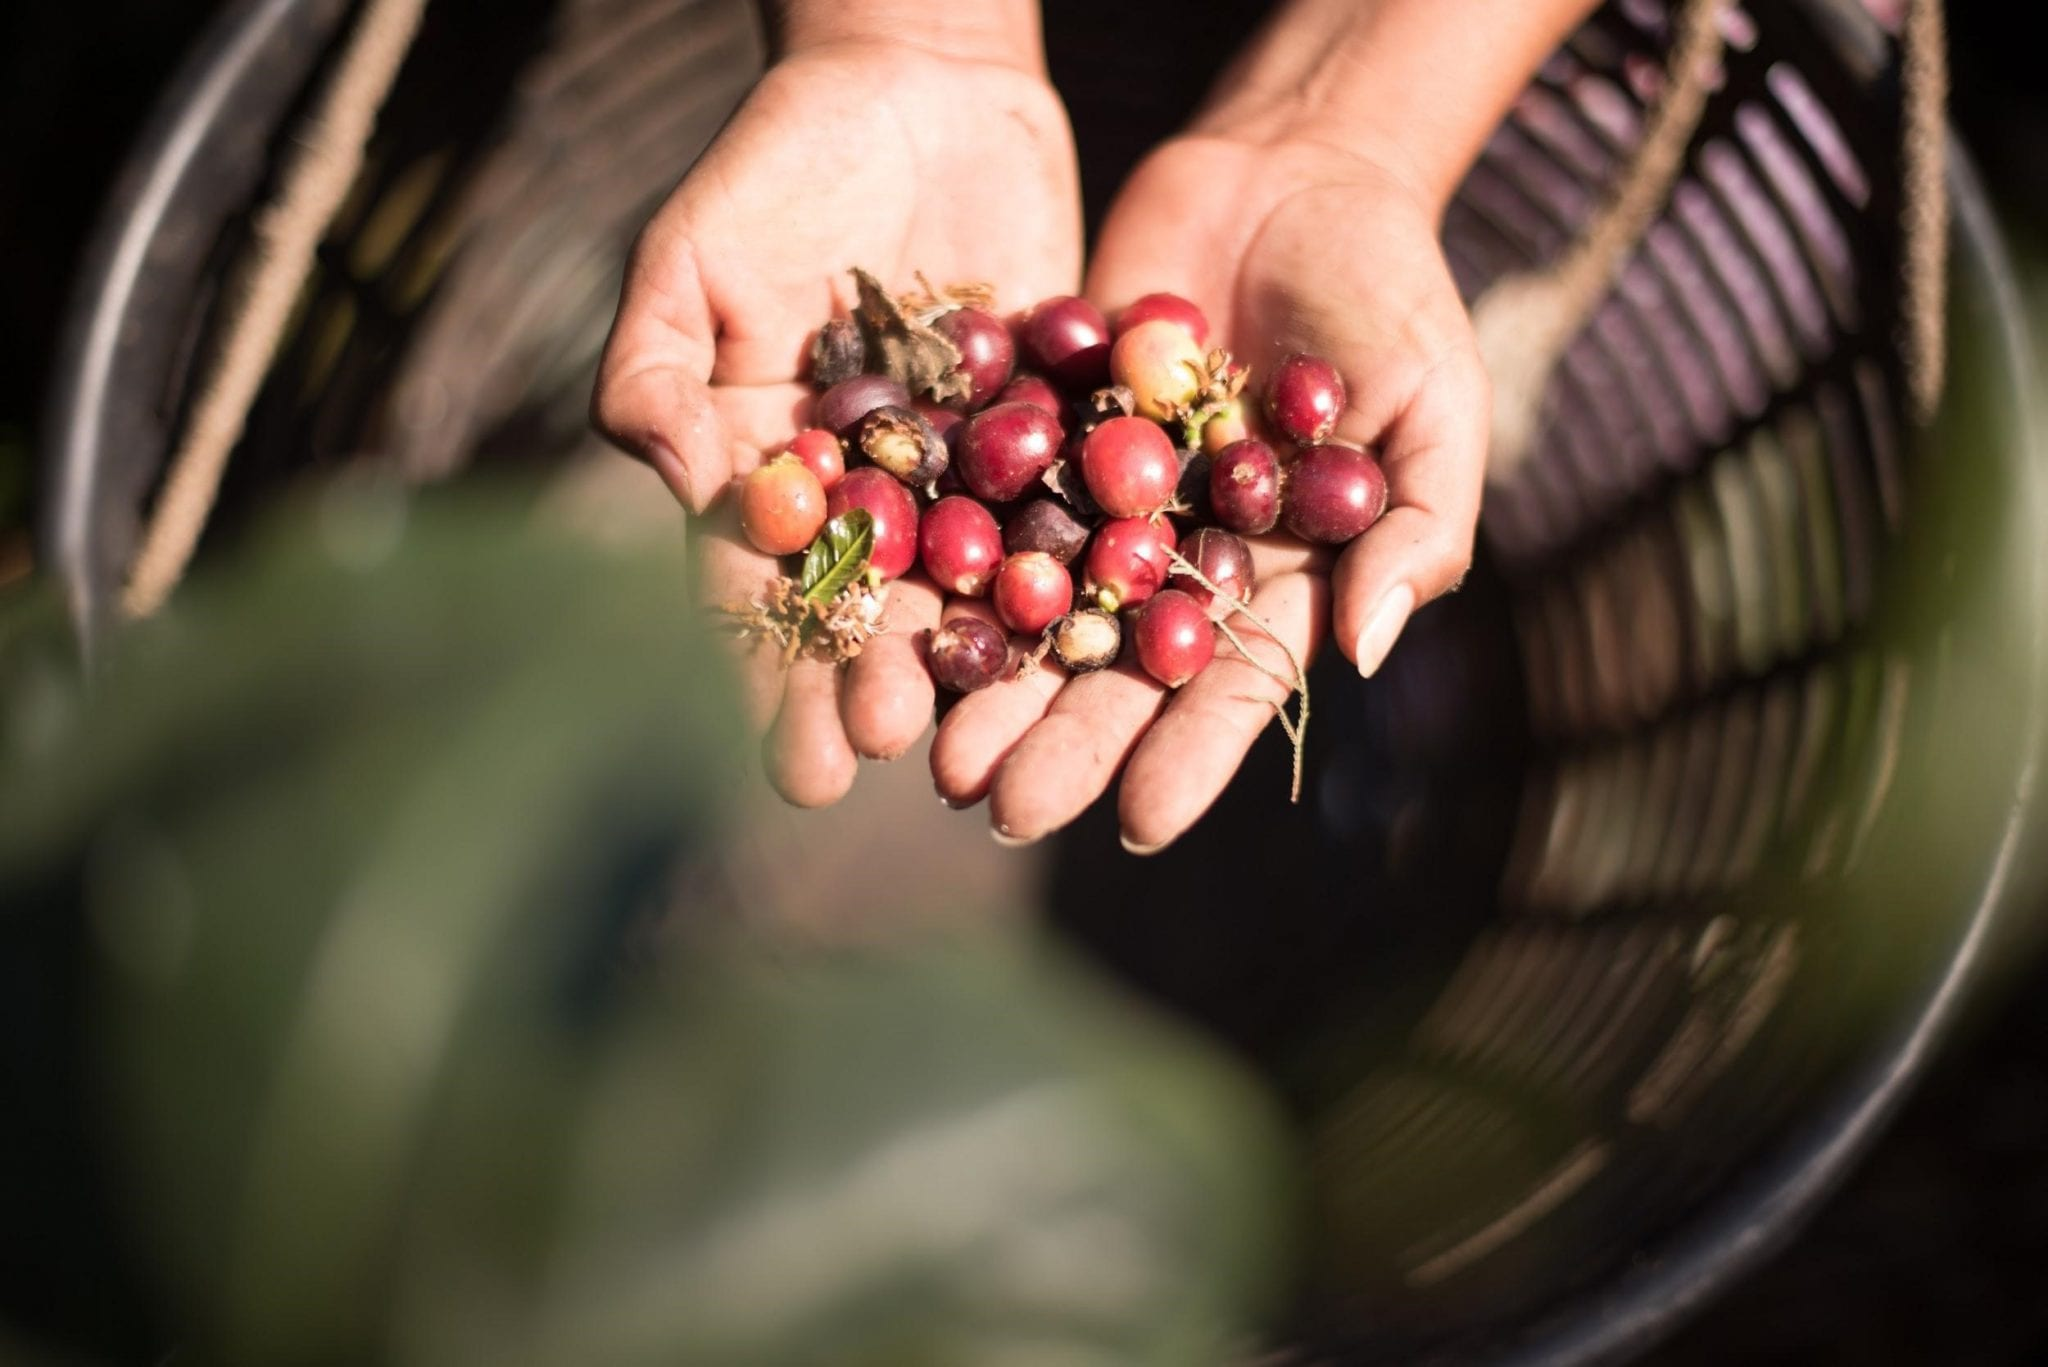 ripe coffee cherries picked by a producer